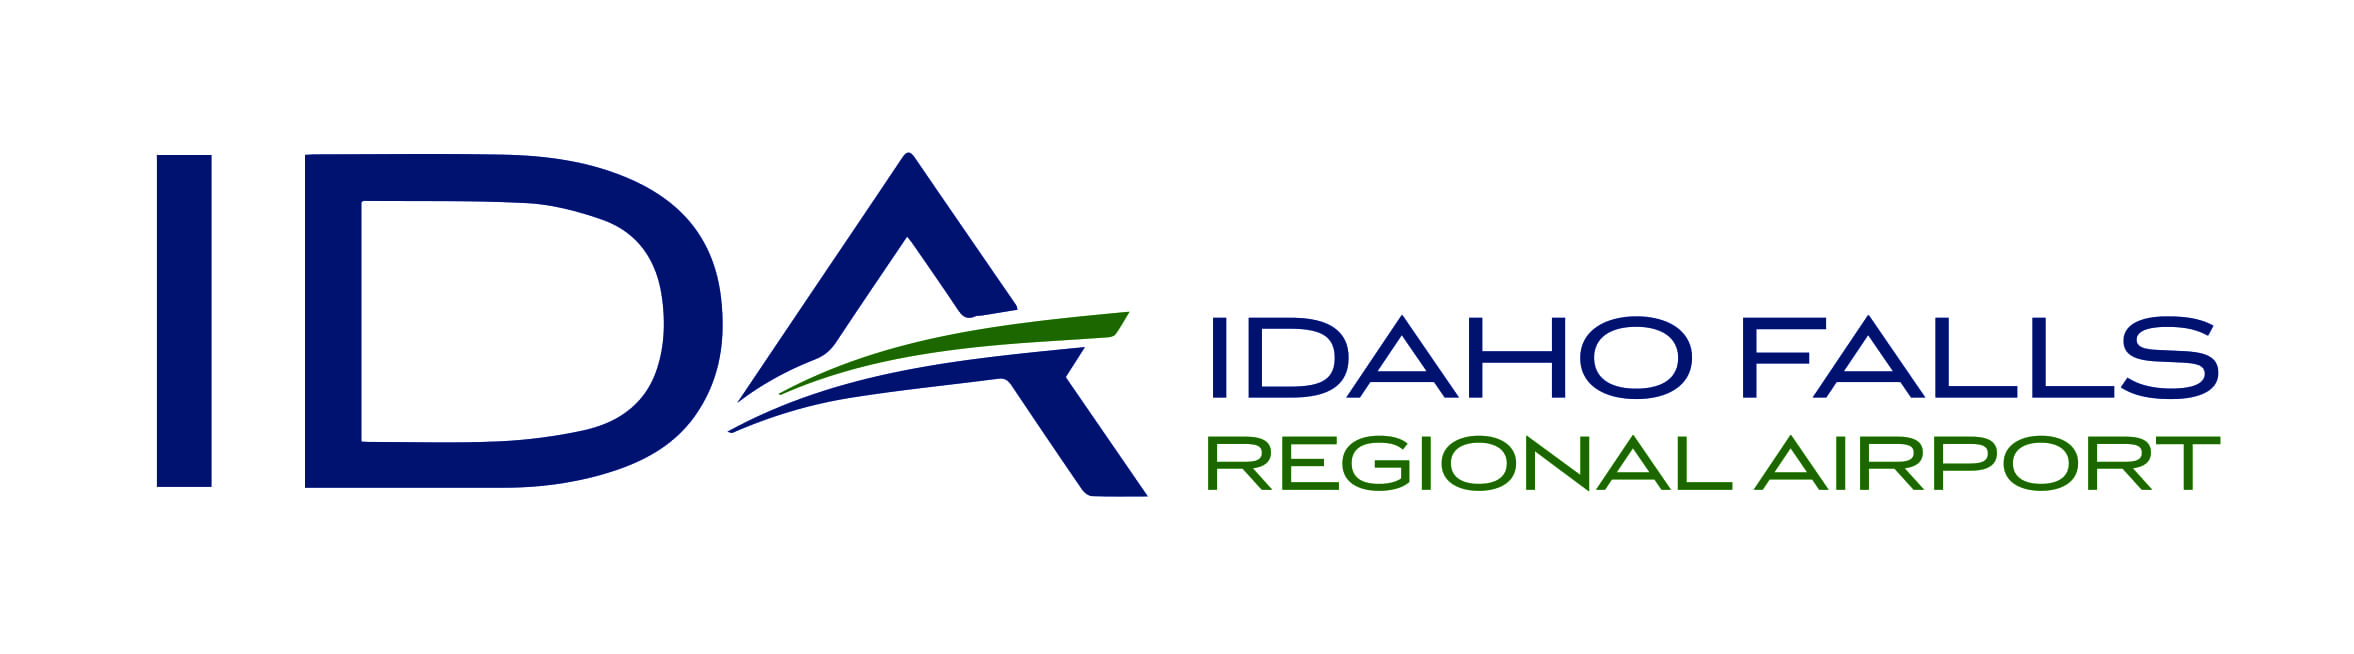 IDA Logo Horizontal With Text 2 Color. Air Service is Taking off at Idaho Falls Regional Airport!